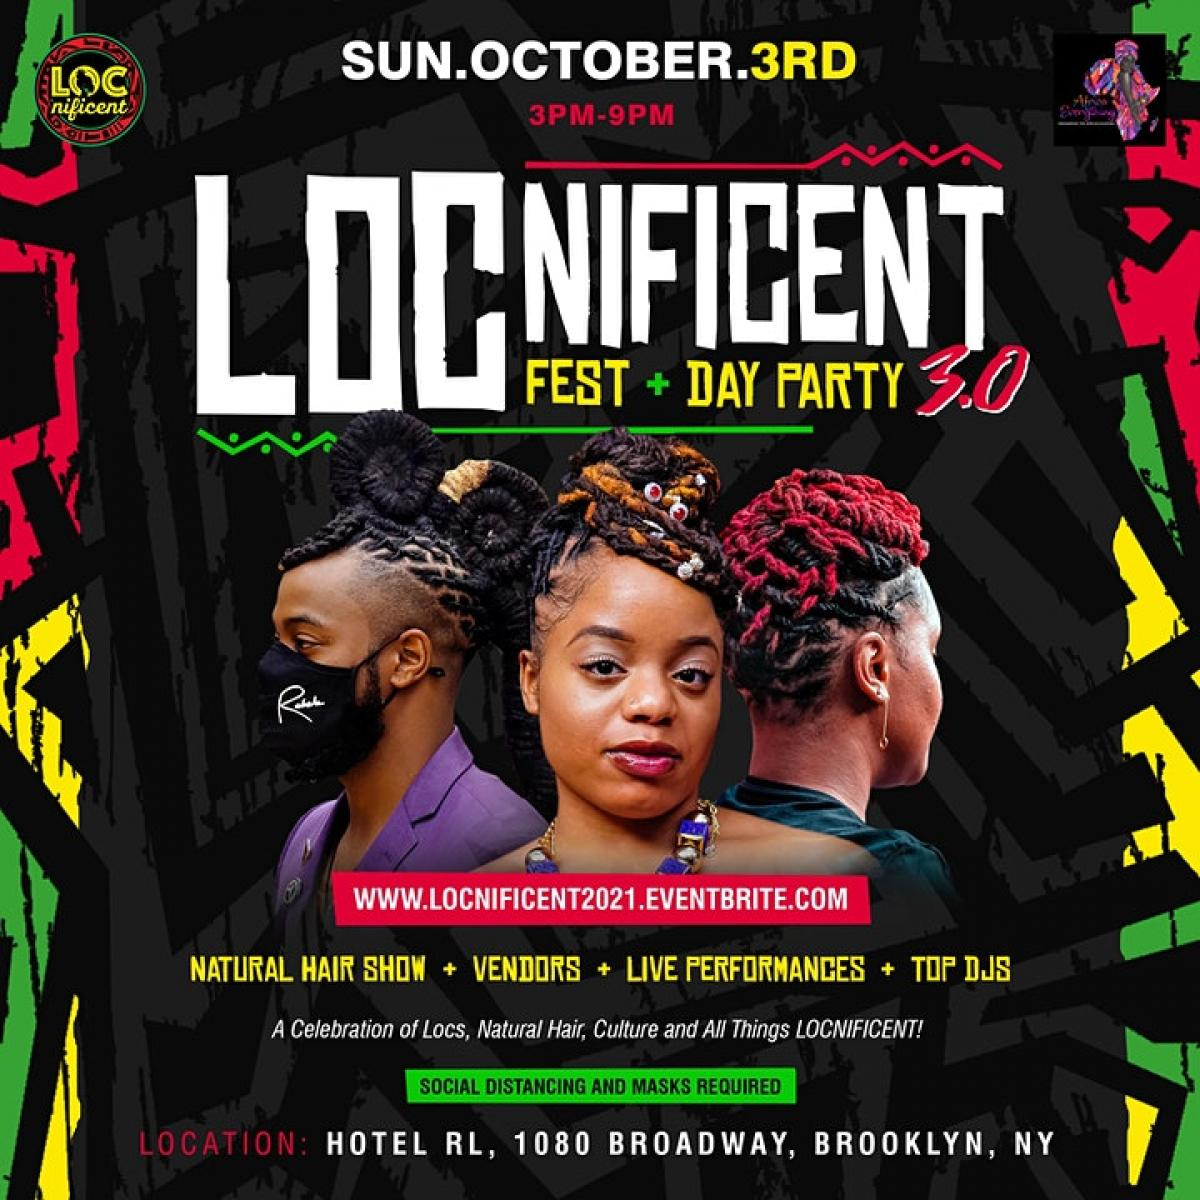 LOCnificent Fest flyer or graphic.